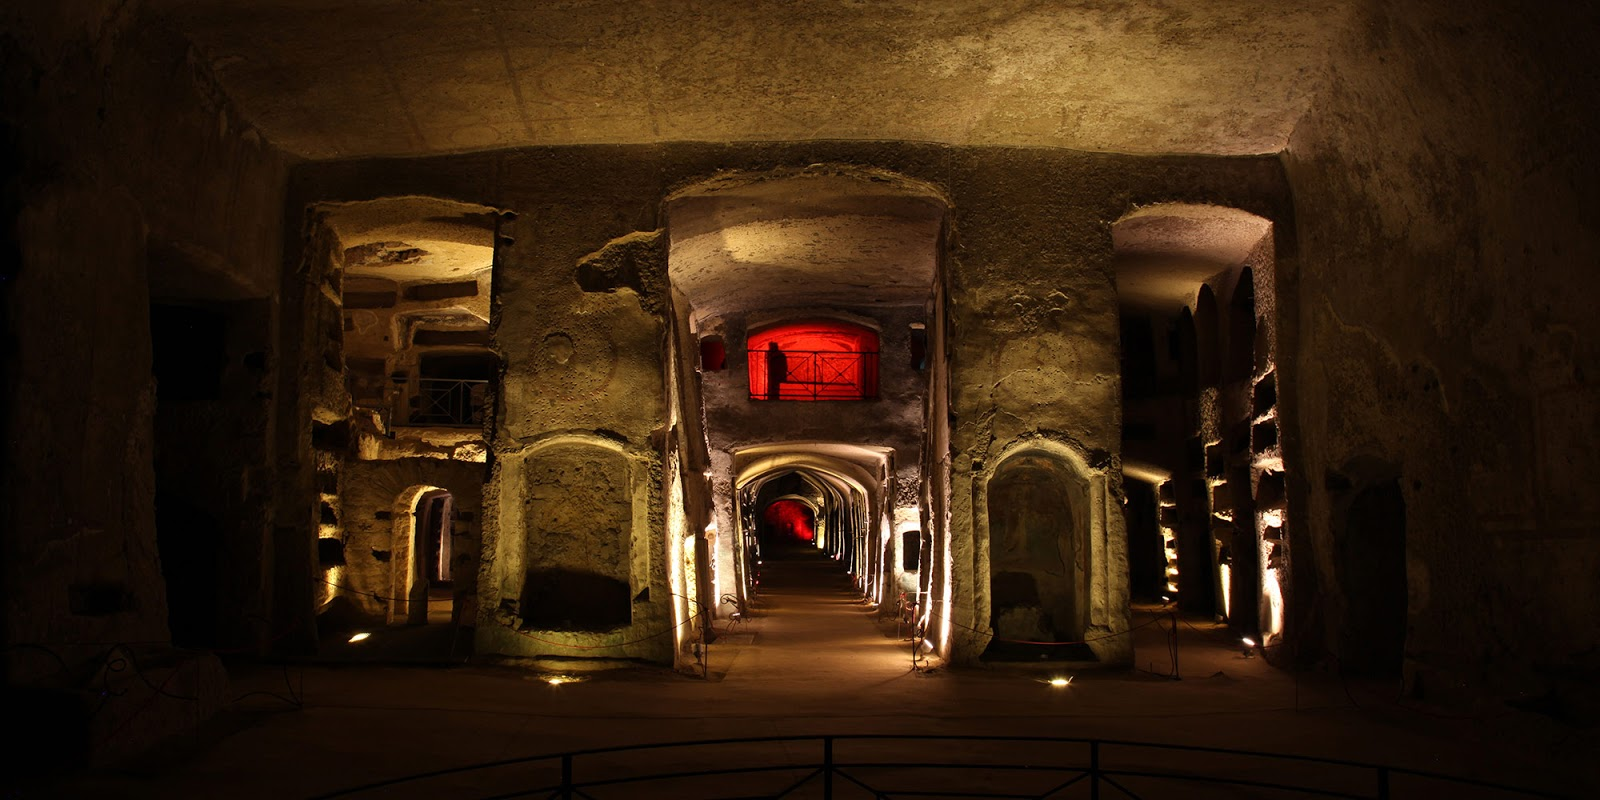 Entrance to the San Gennaro Catacombs